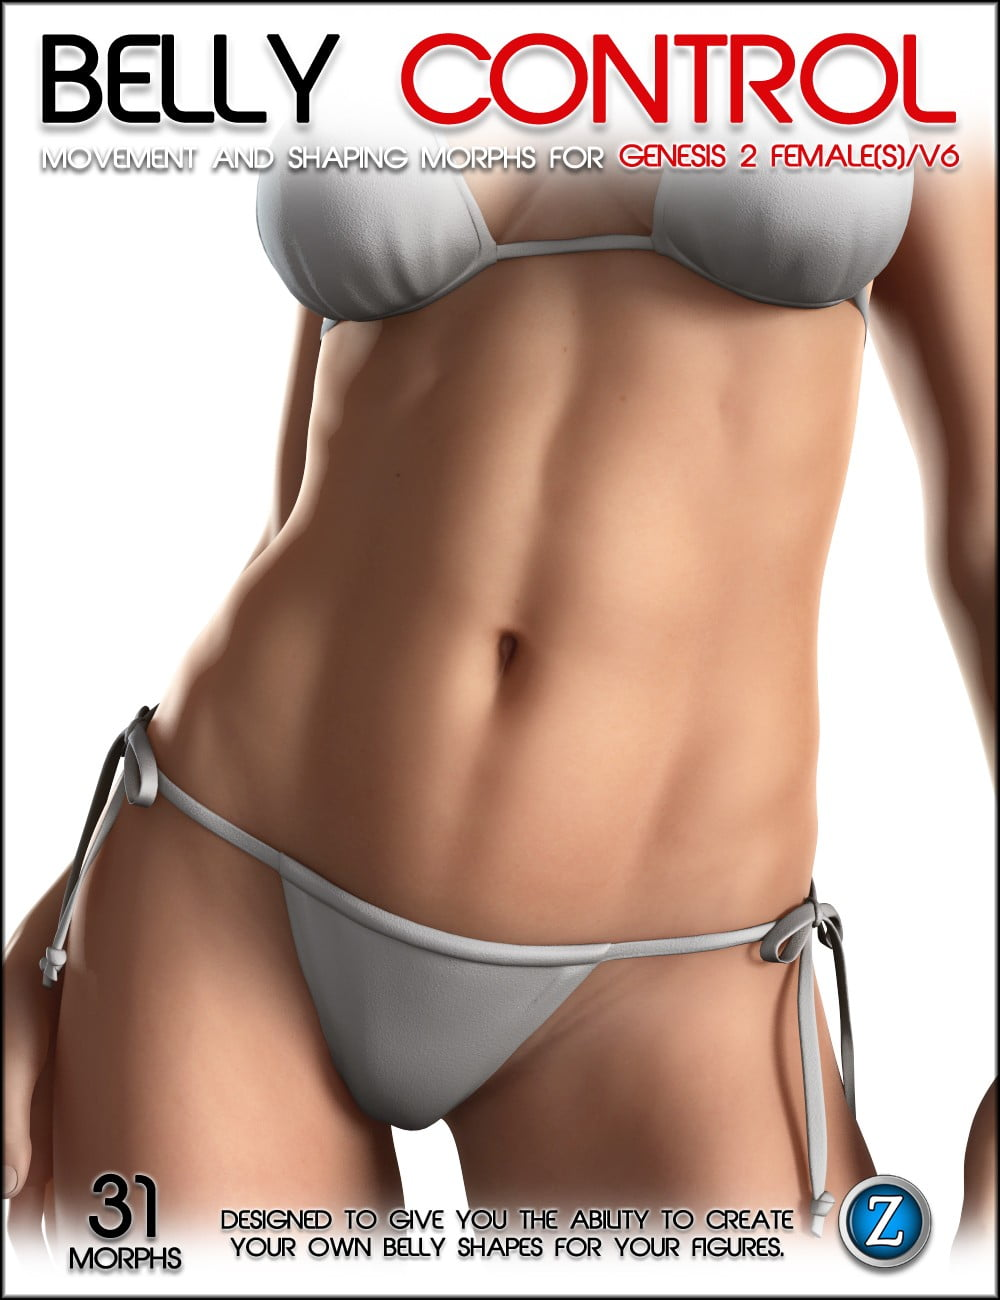 Belly Control For Genesis 2 Female(s) and V6